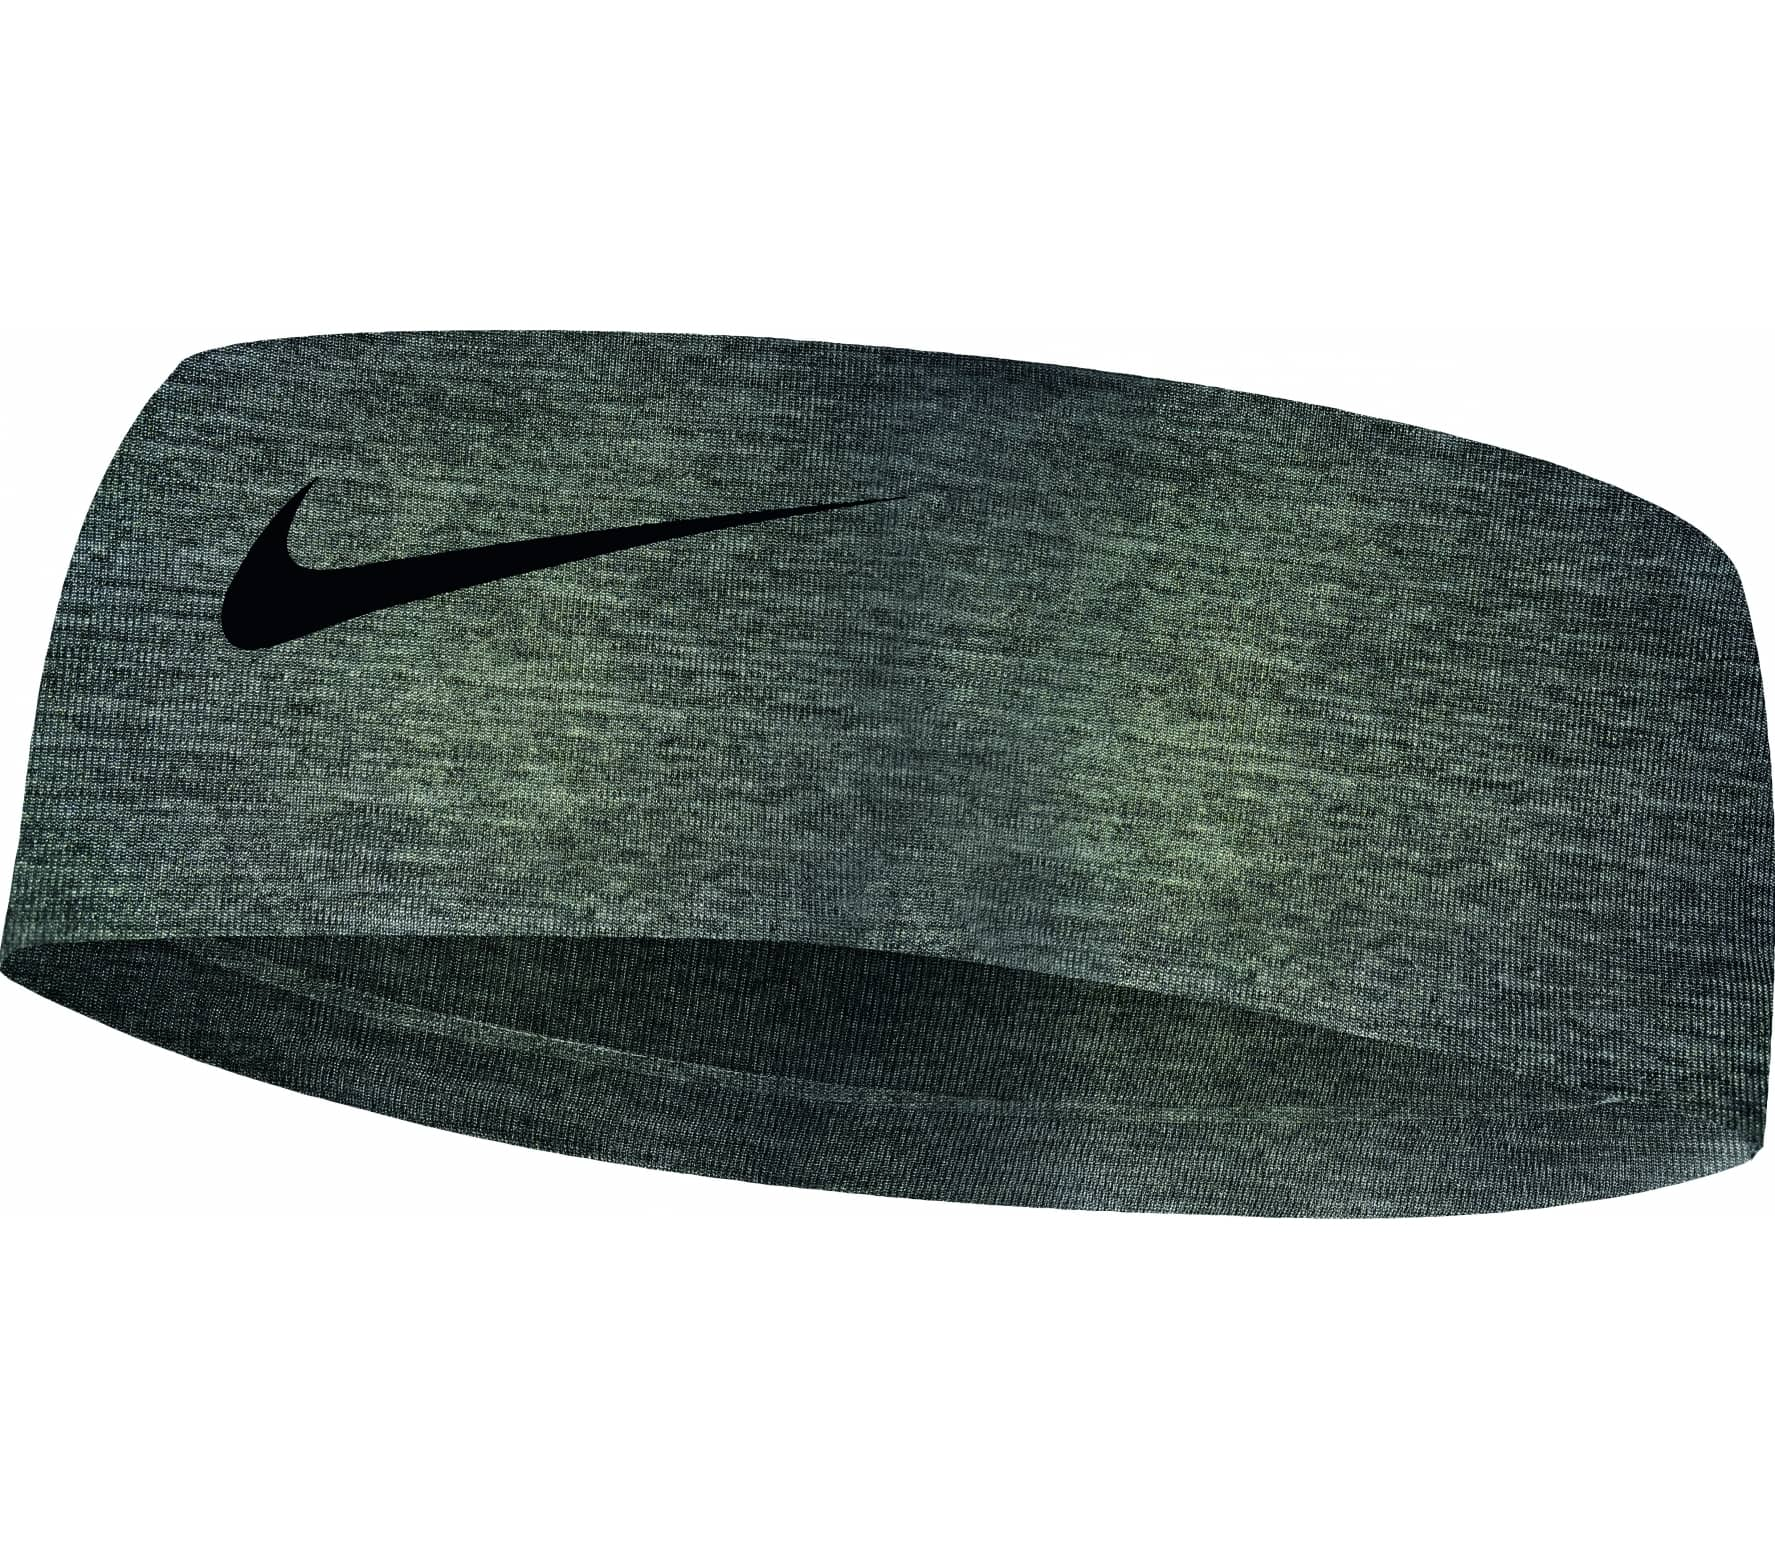 Nike - Fury headband 2.0 Unisex headband (dark grey-black)